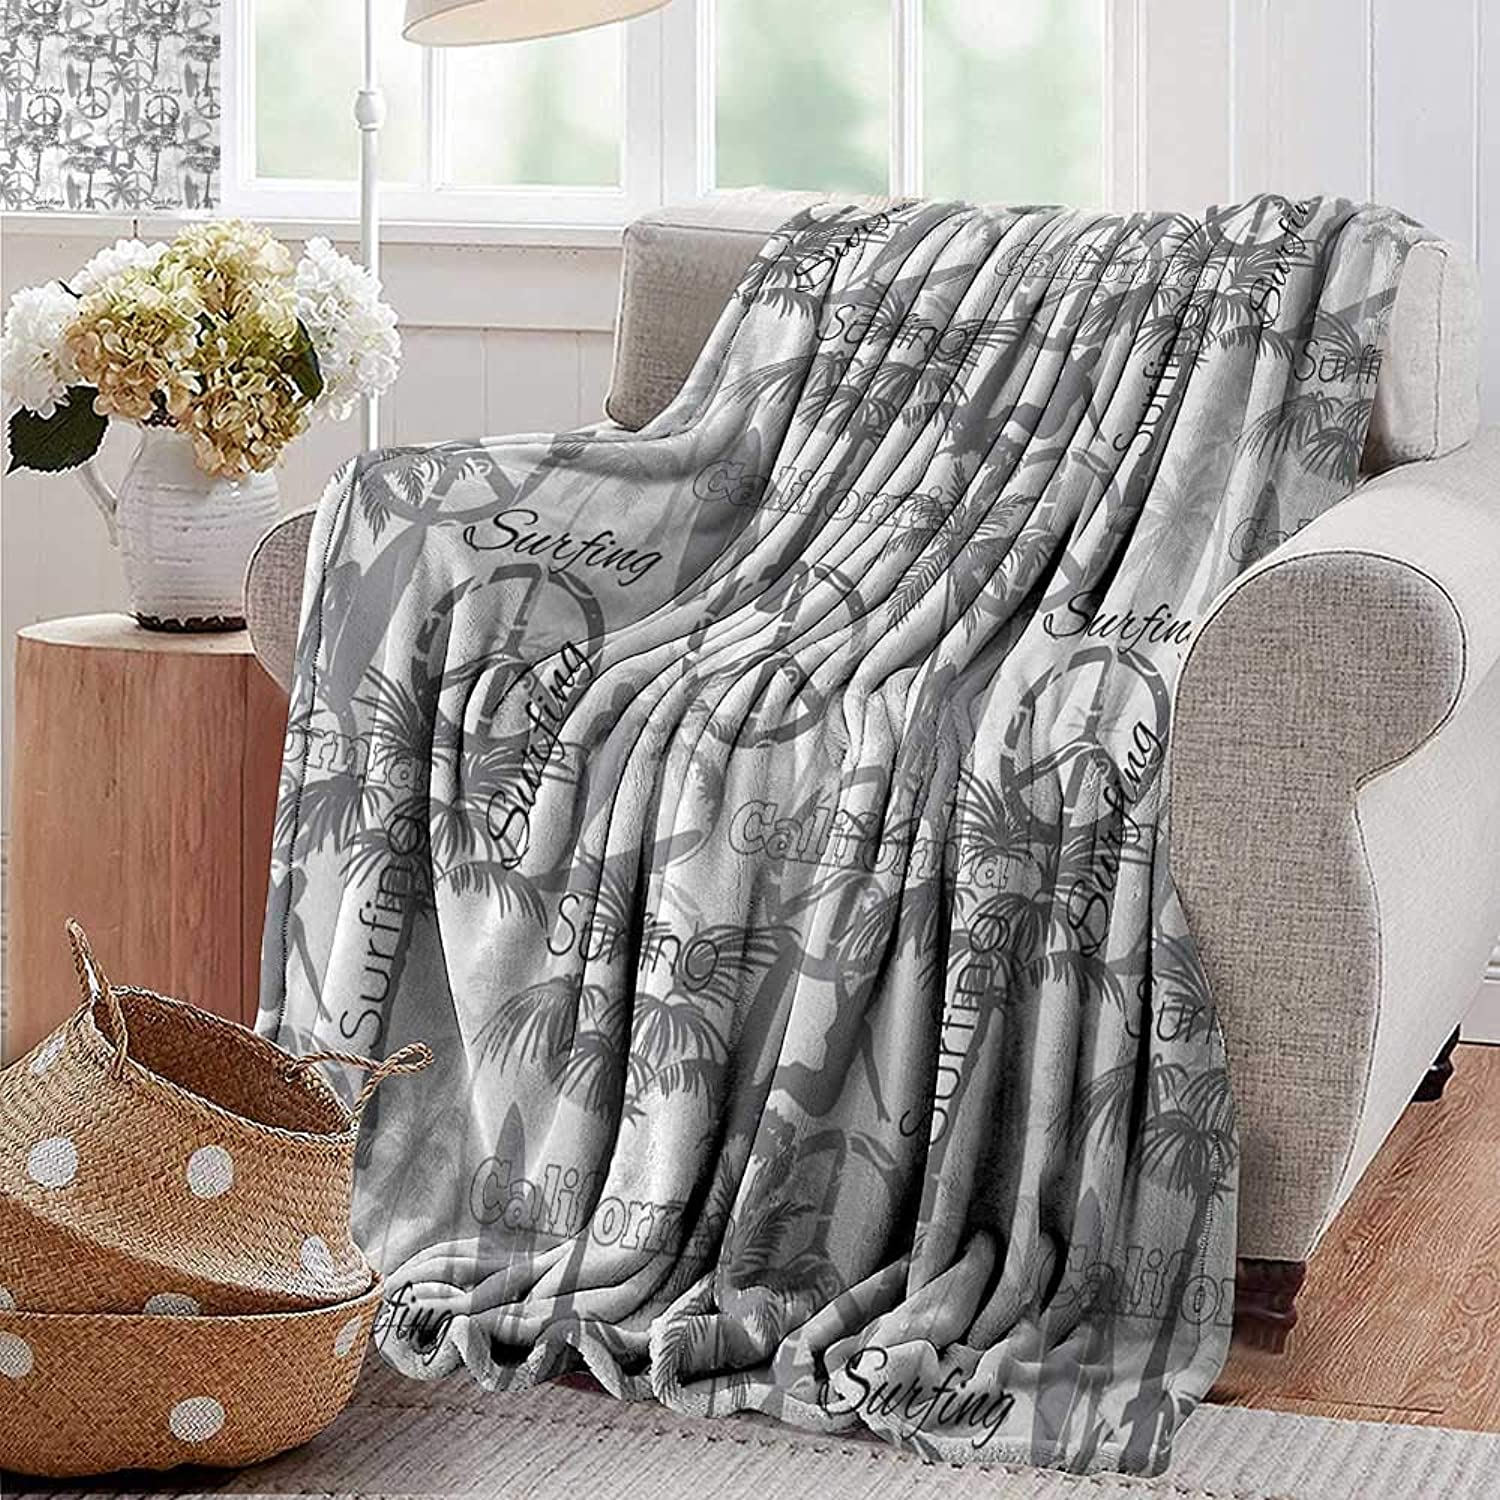 Weighted Blanket for Kids,Surf,Silhouette of a Surfing Lady Woman in The Ocean Peace Signs Retro Pattern Artwork,Grey White,Weighted Blanket for Adults Kids, Better Deeper Sleep 35 x60